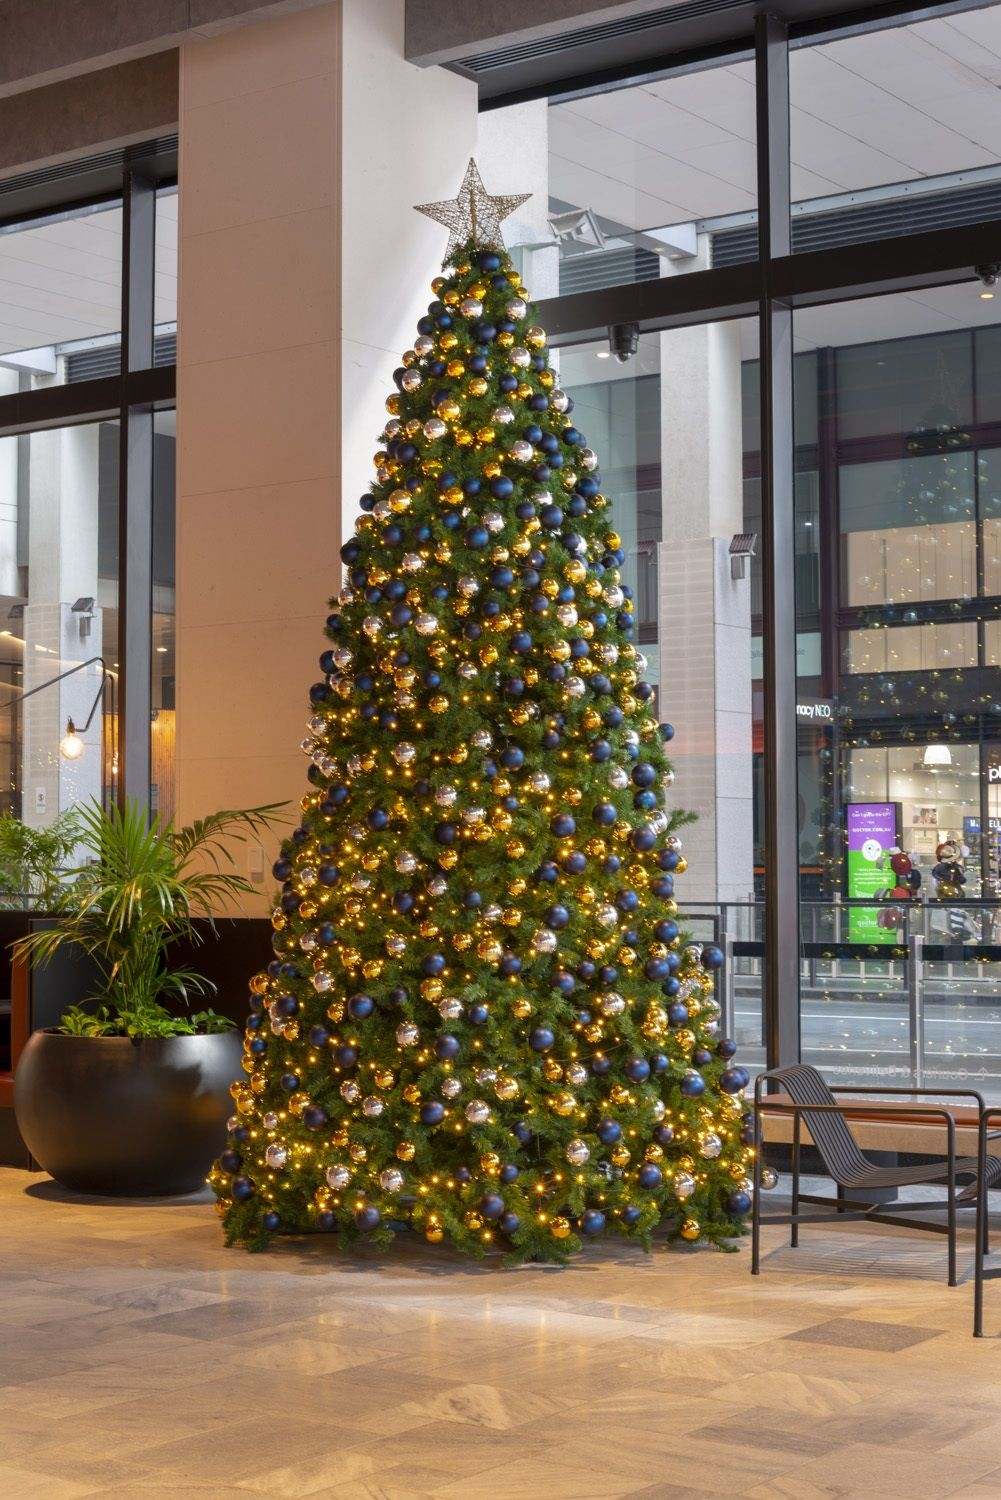 15 Ft Christmas Tree.From Our 2018 Collection 15ft Tree Decorated In Navy And